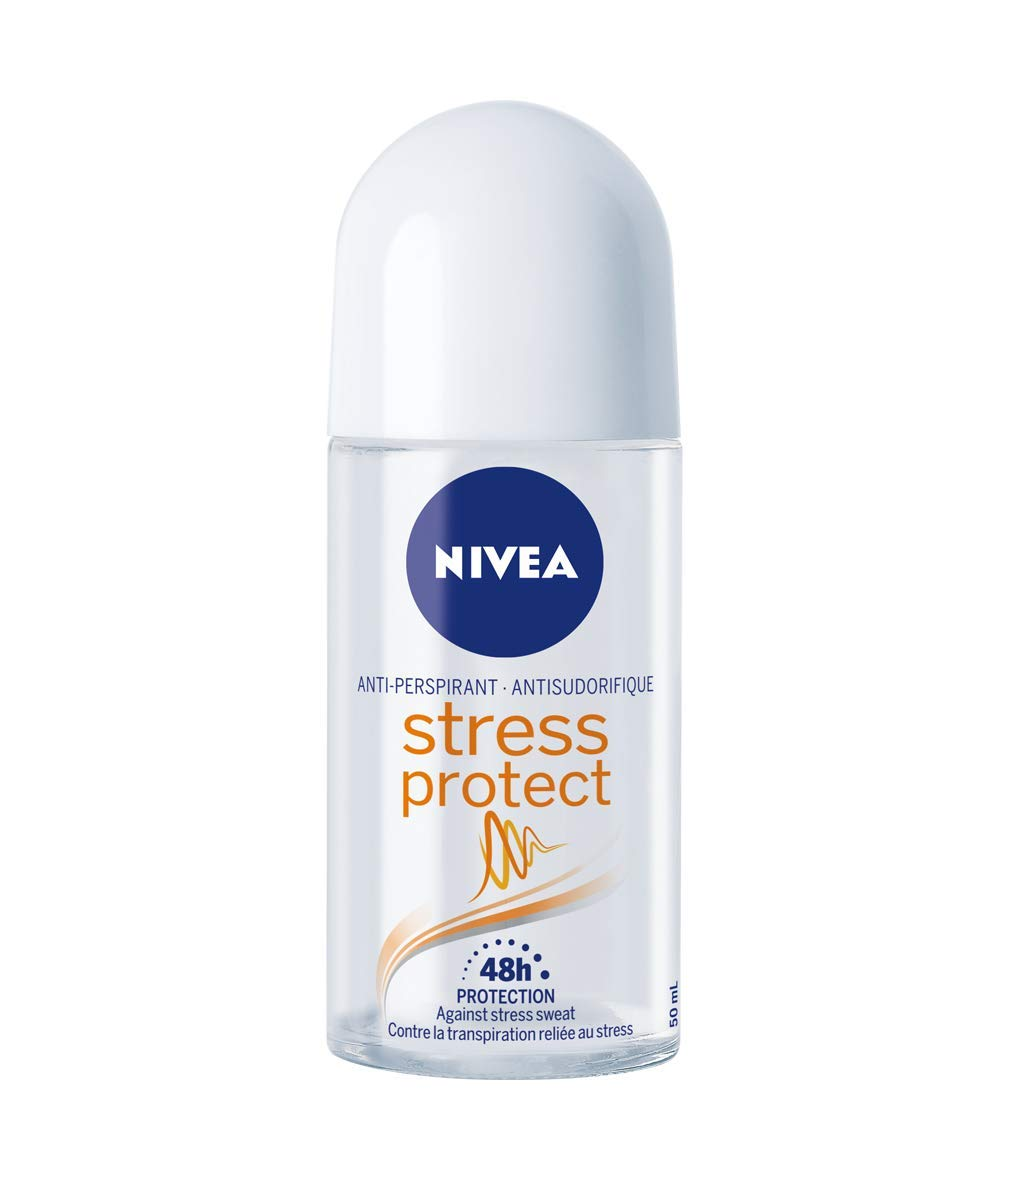 NIVEA Stress Protect 48H Protection Anti-Perspirant Stick, 43 g 056594005624